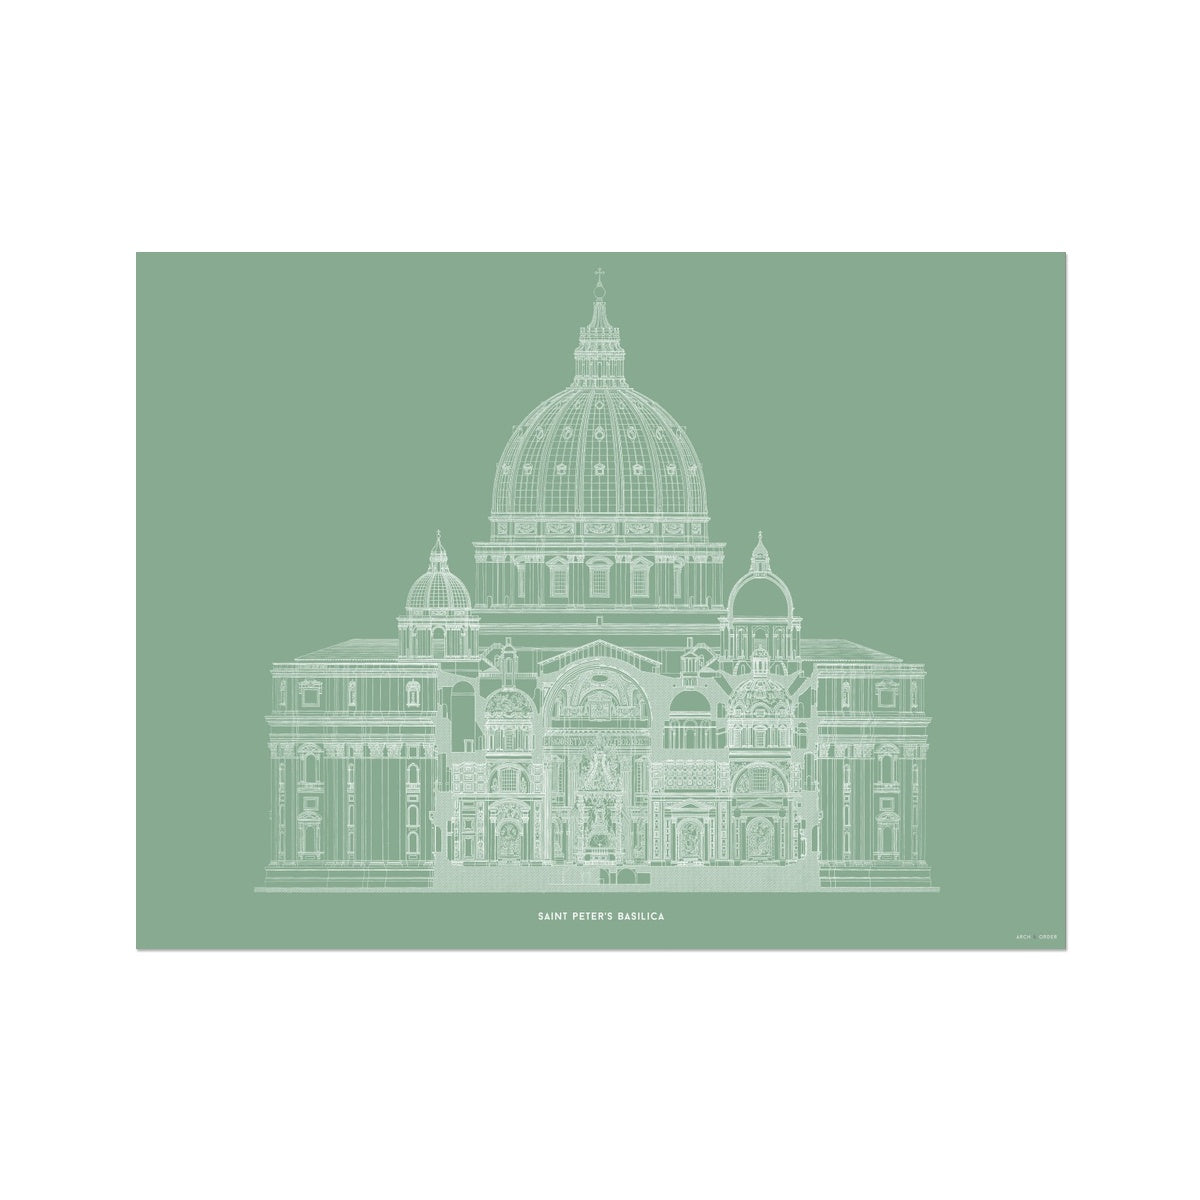 Saint Peter's Basilica - Primary Elevation Cross Section - Green -  Etching Paper Print